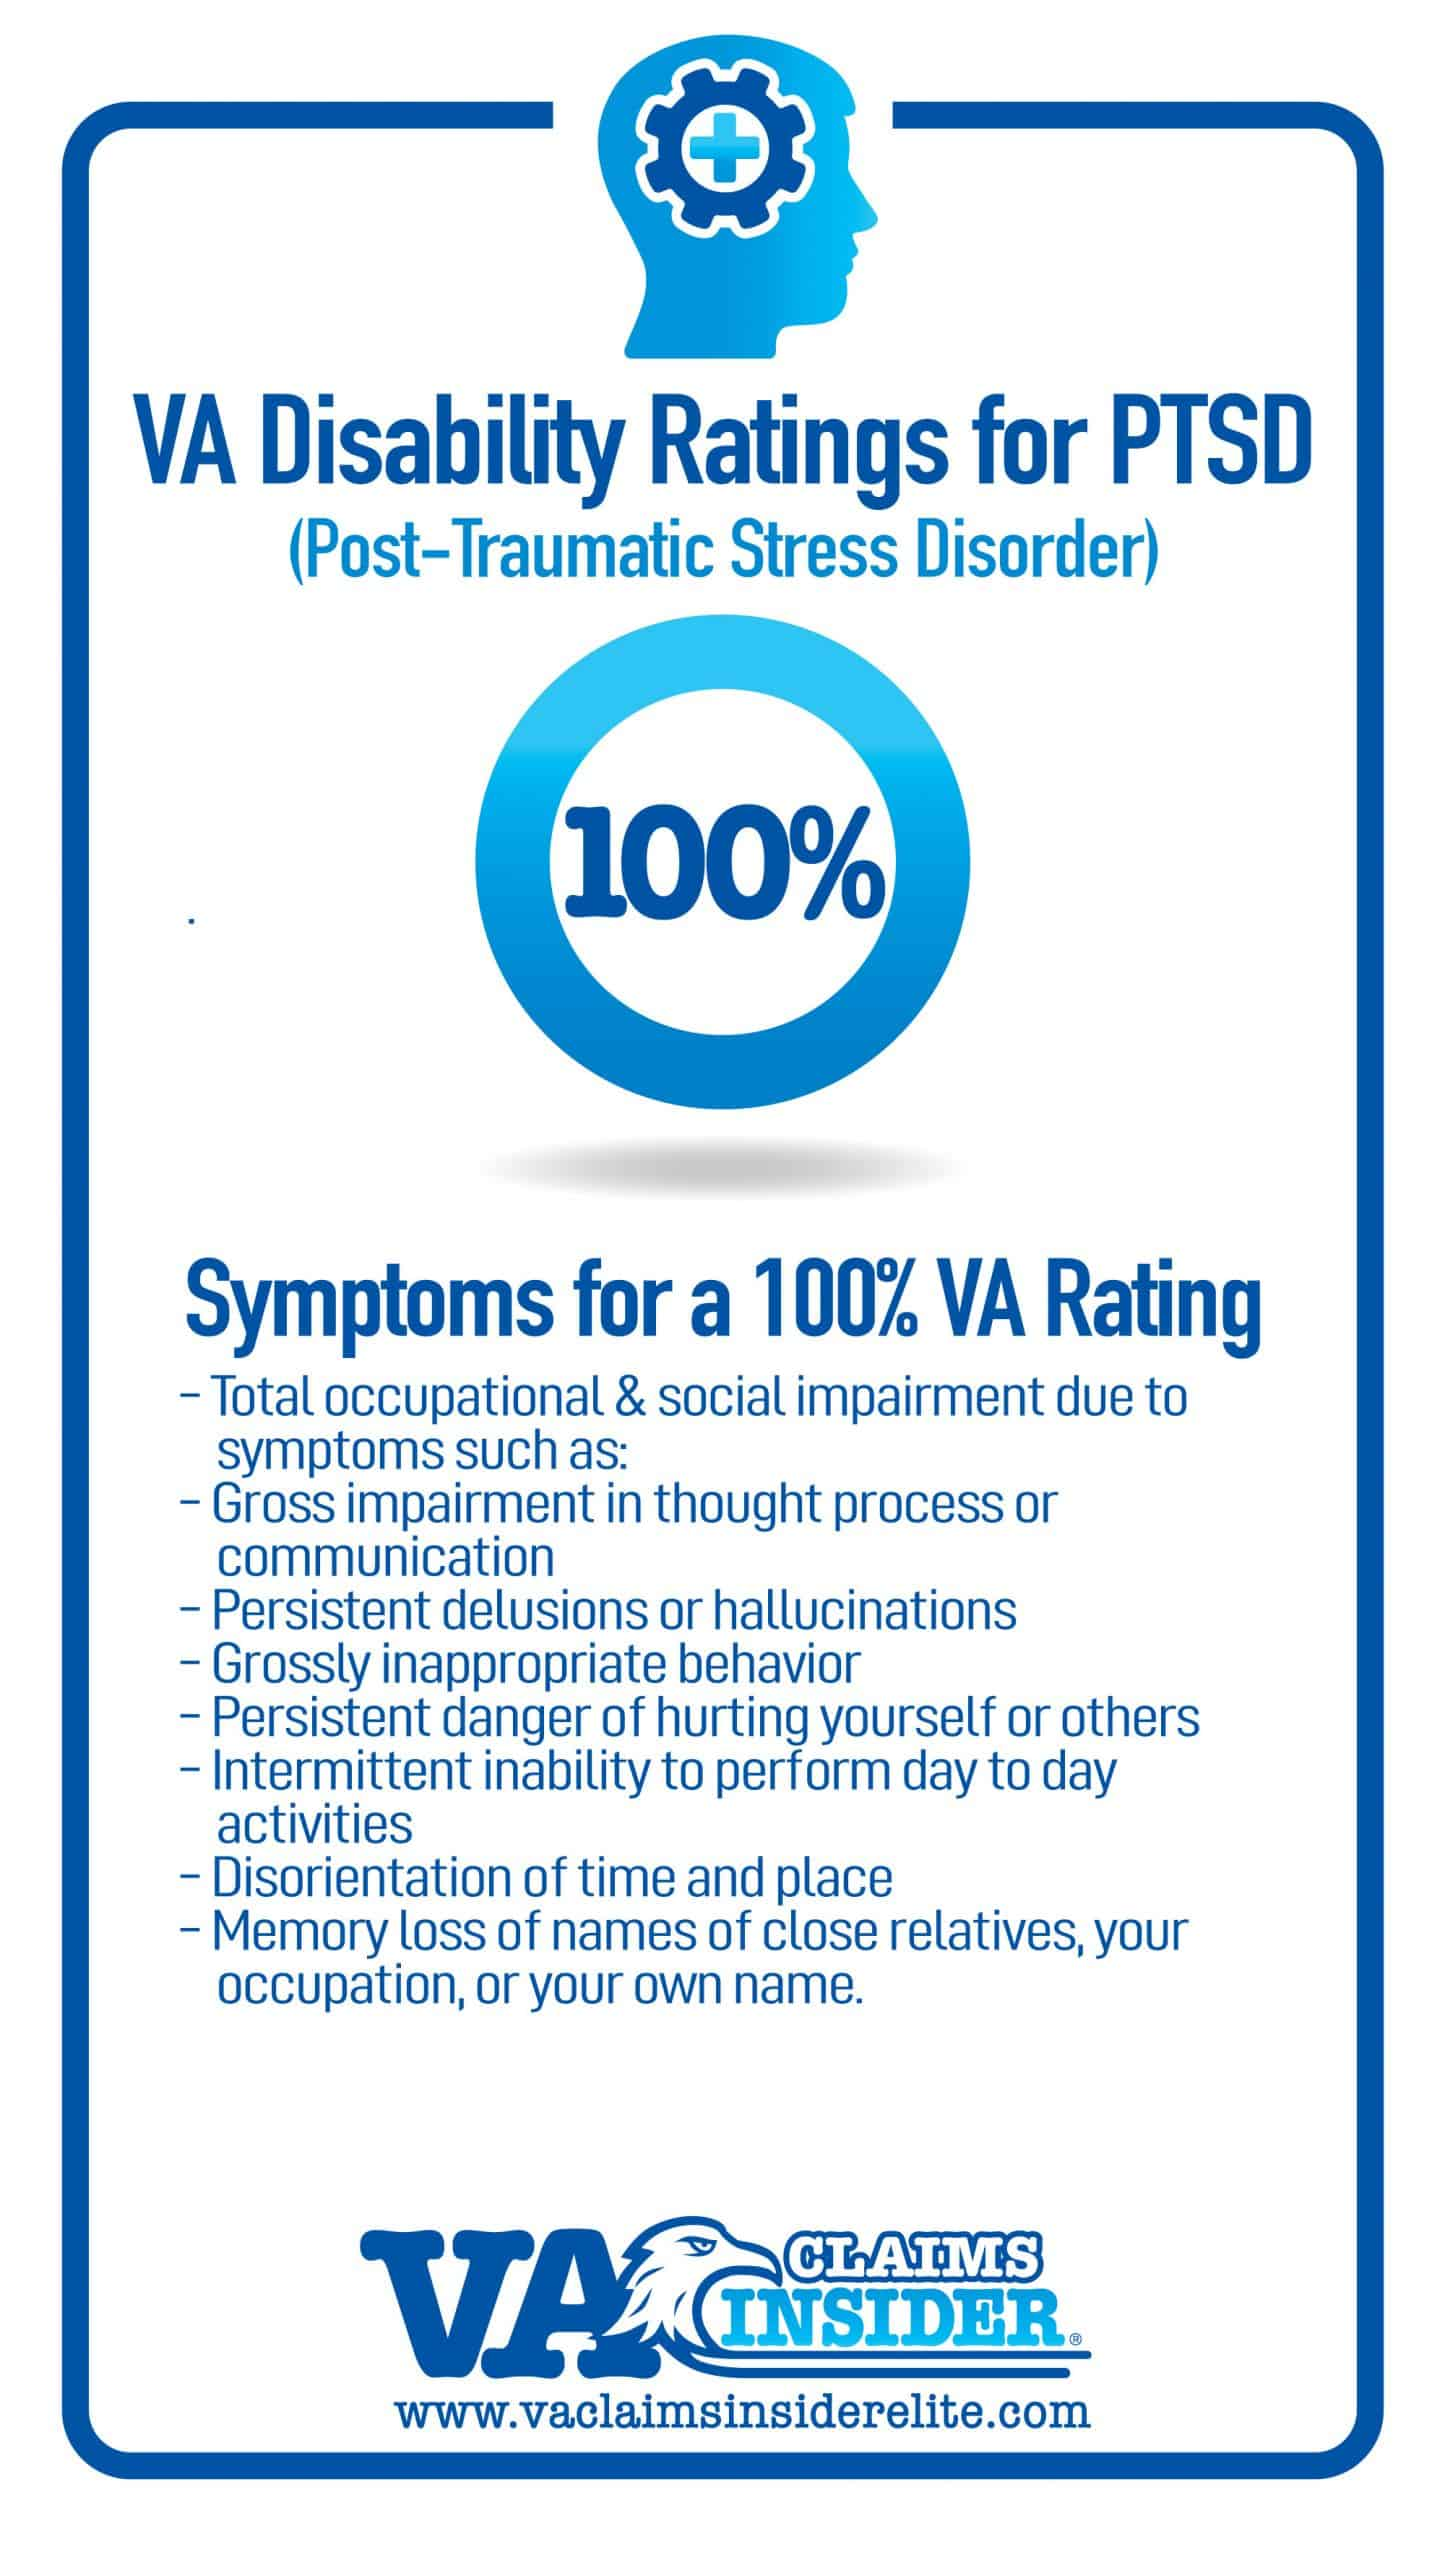 Symptoms of 100 Percent VA Rating for PTSD